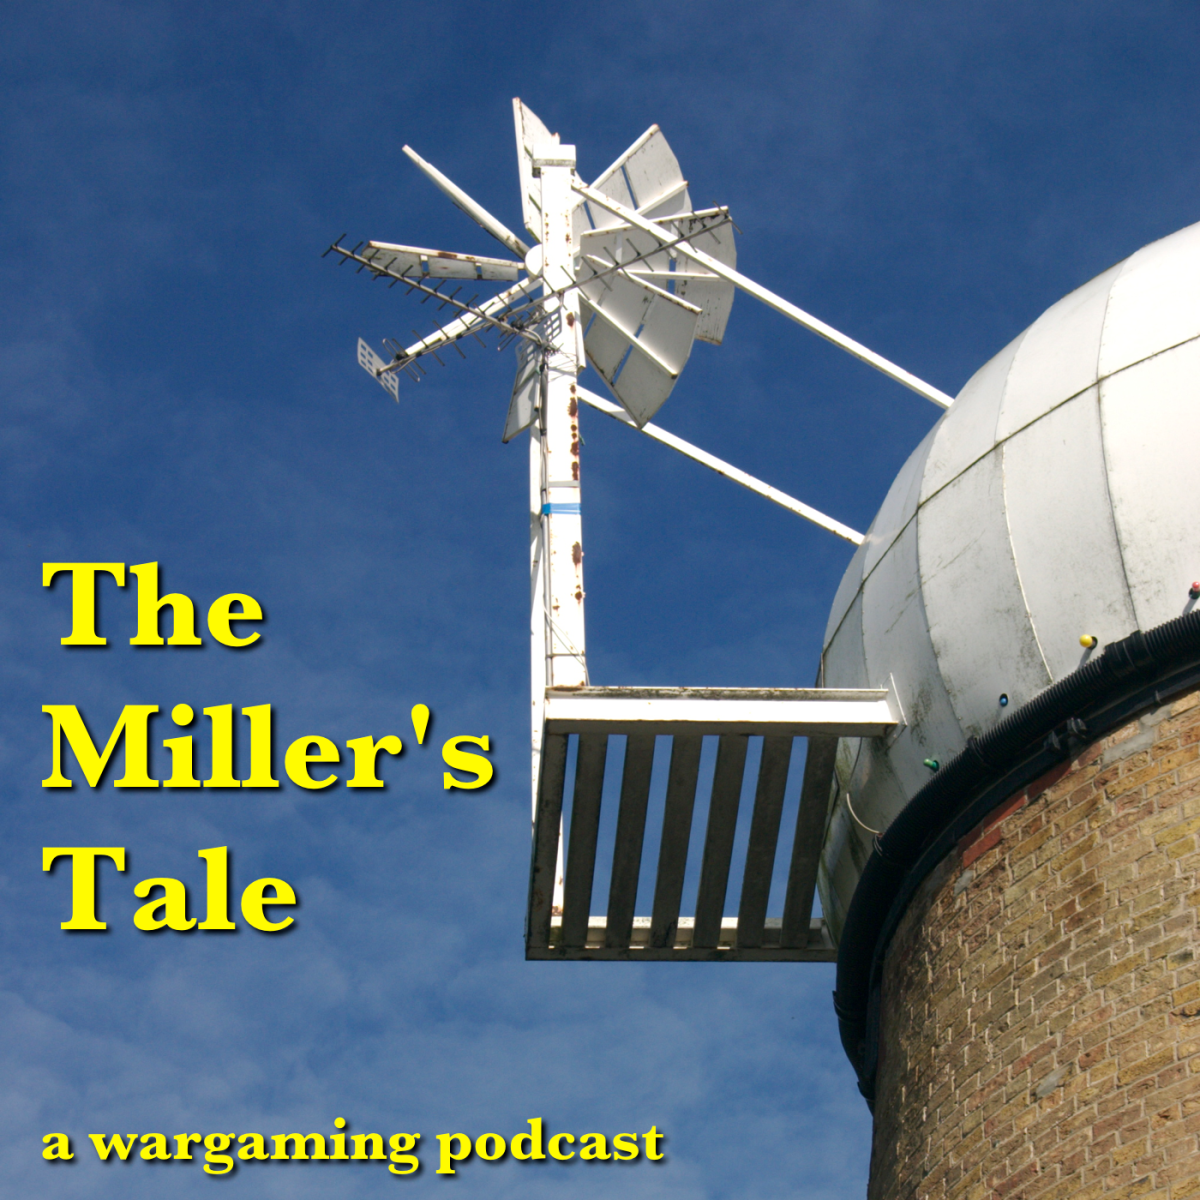 The Miller's Tale - Episode 2 is published